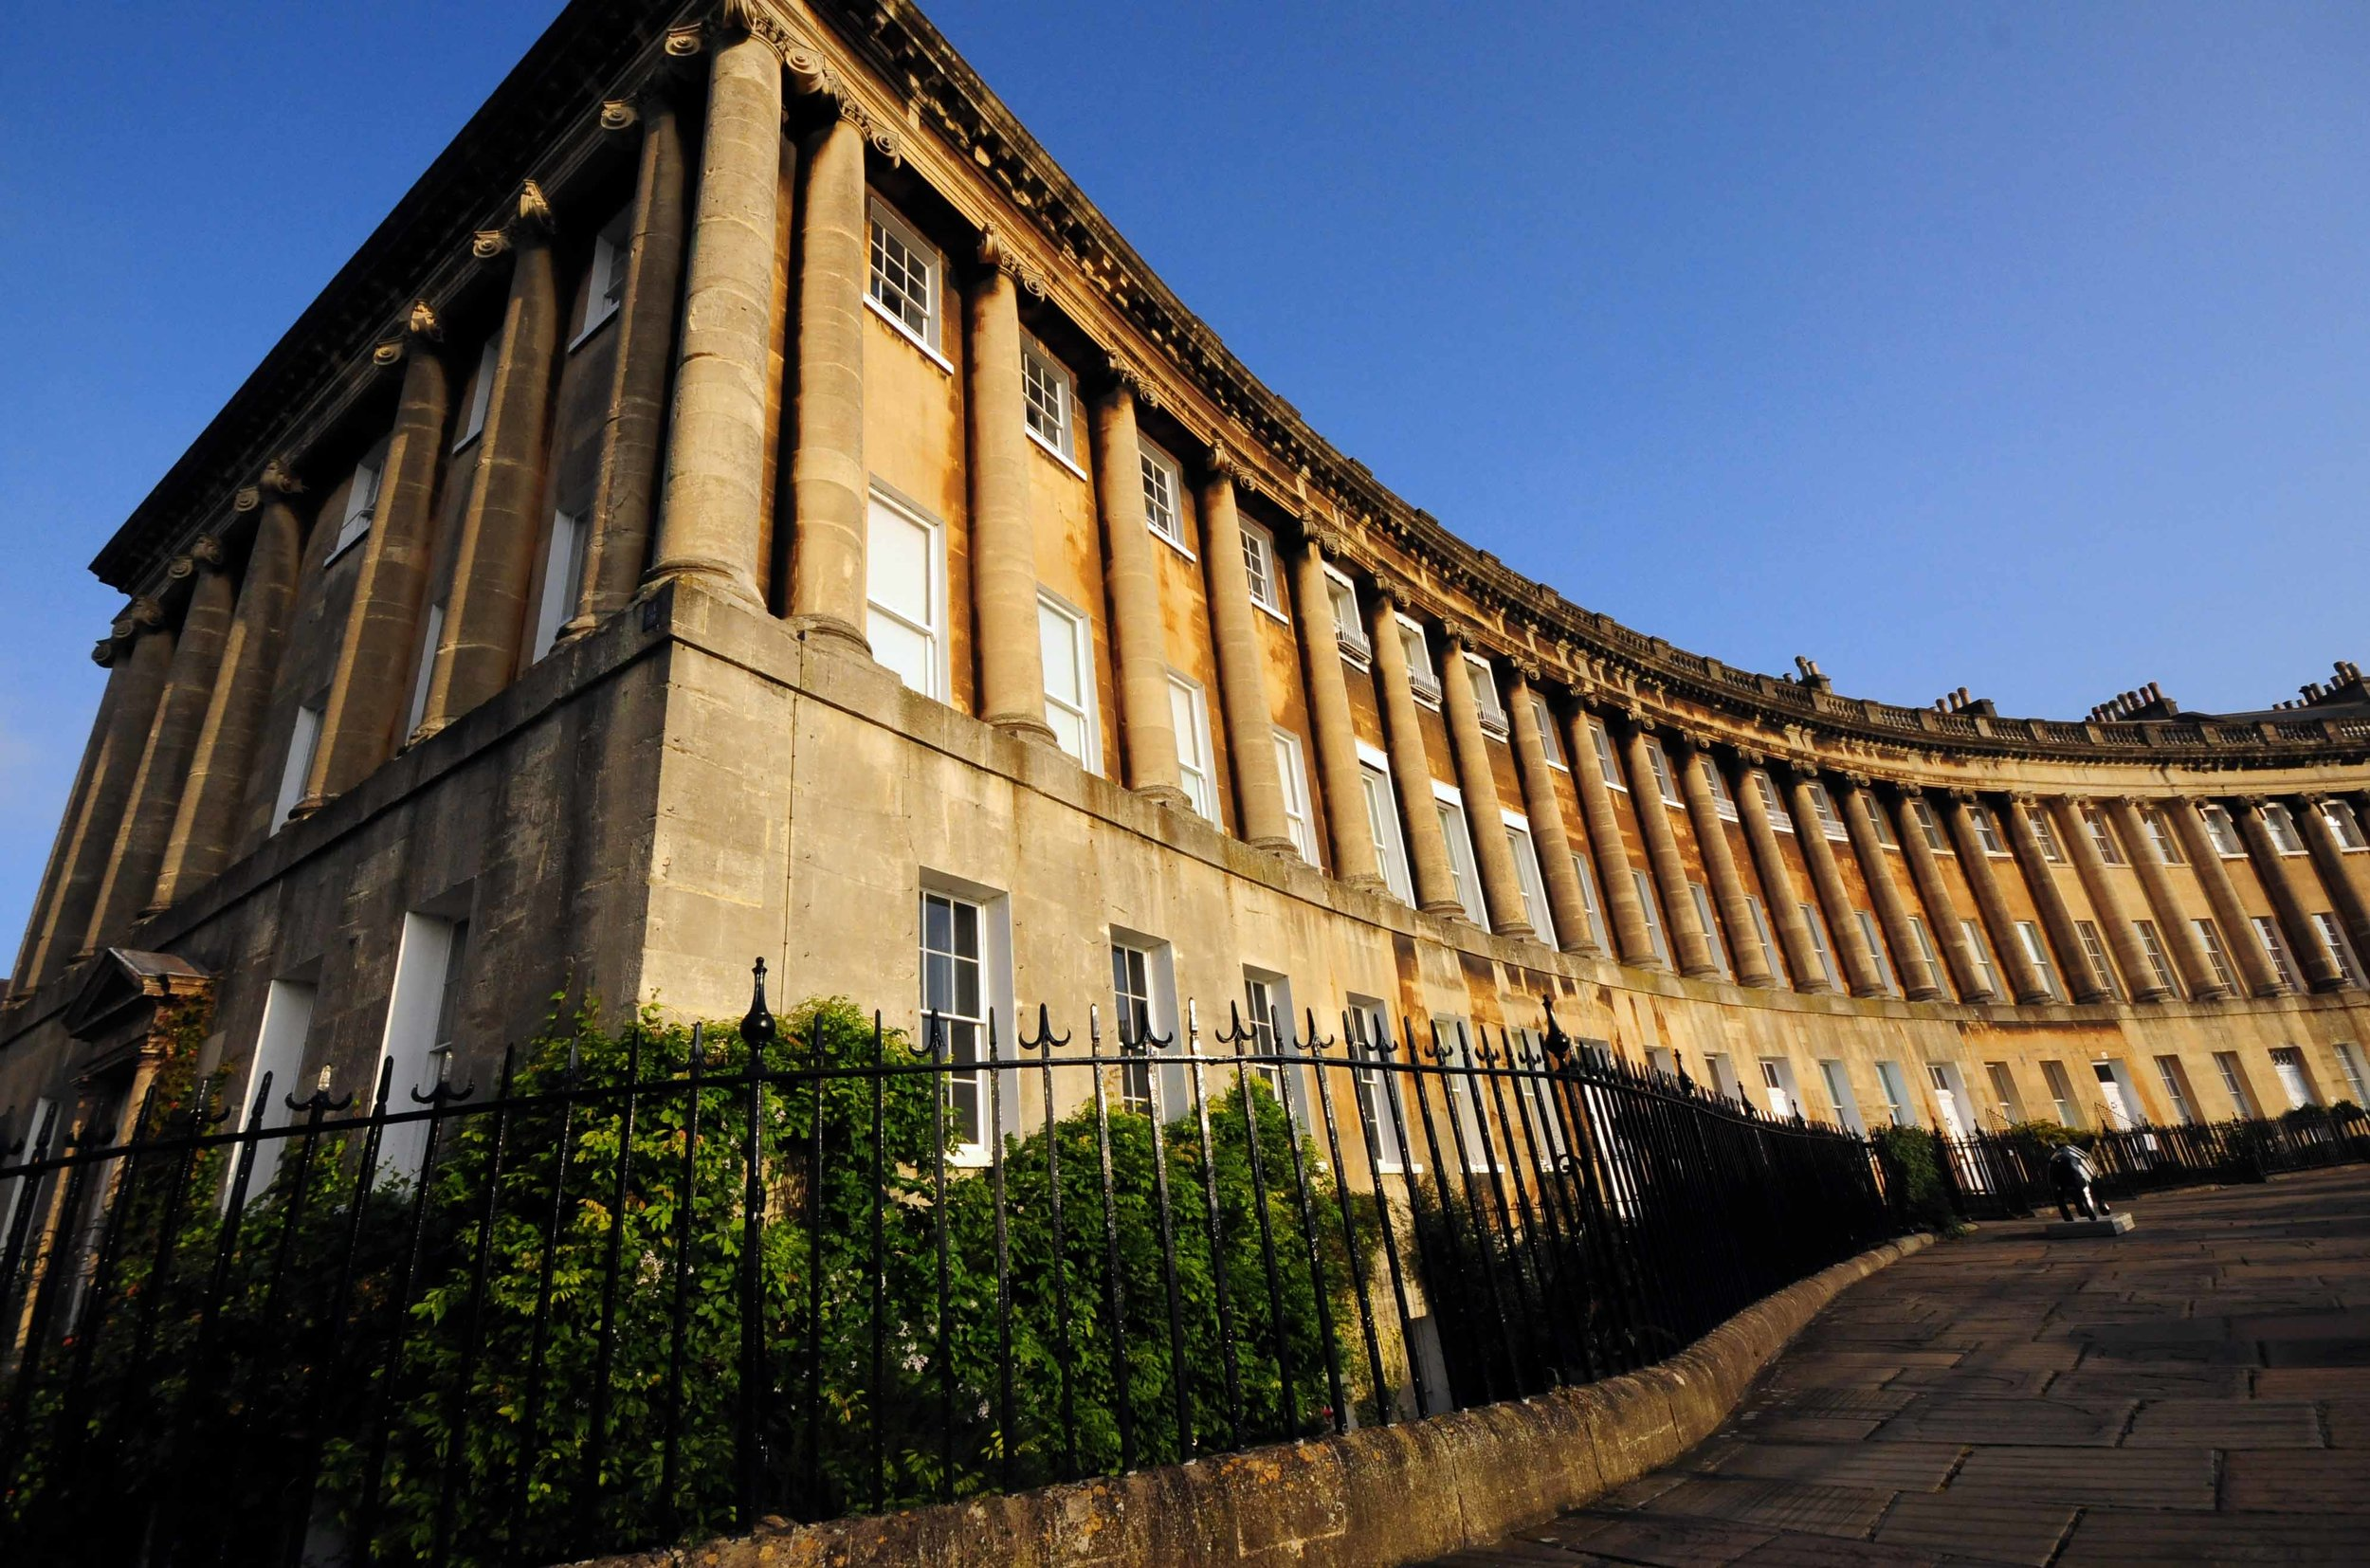 2190. Wide Angle, West End, The Royal Crescent, Bath, England.jpg